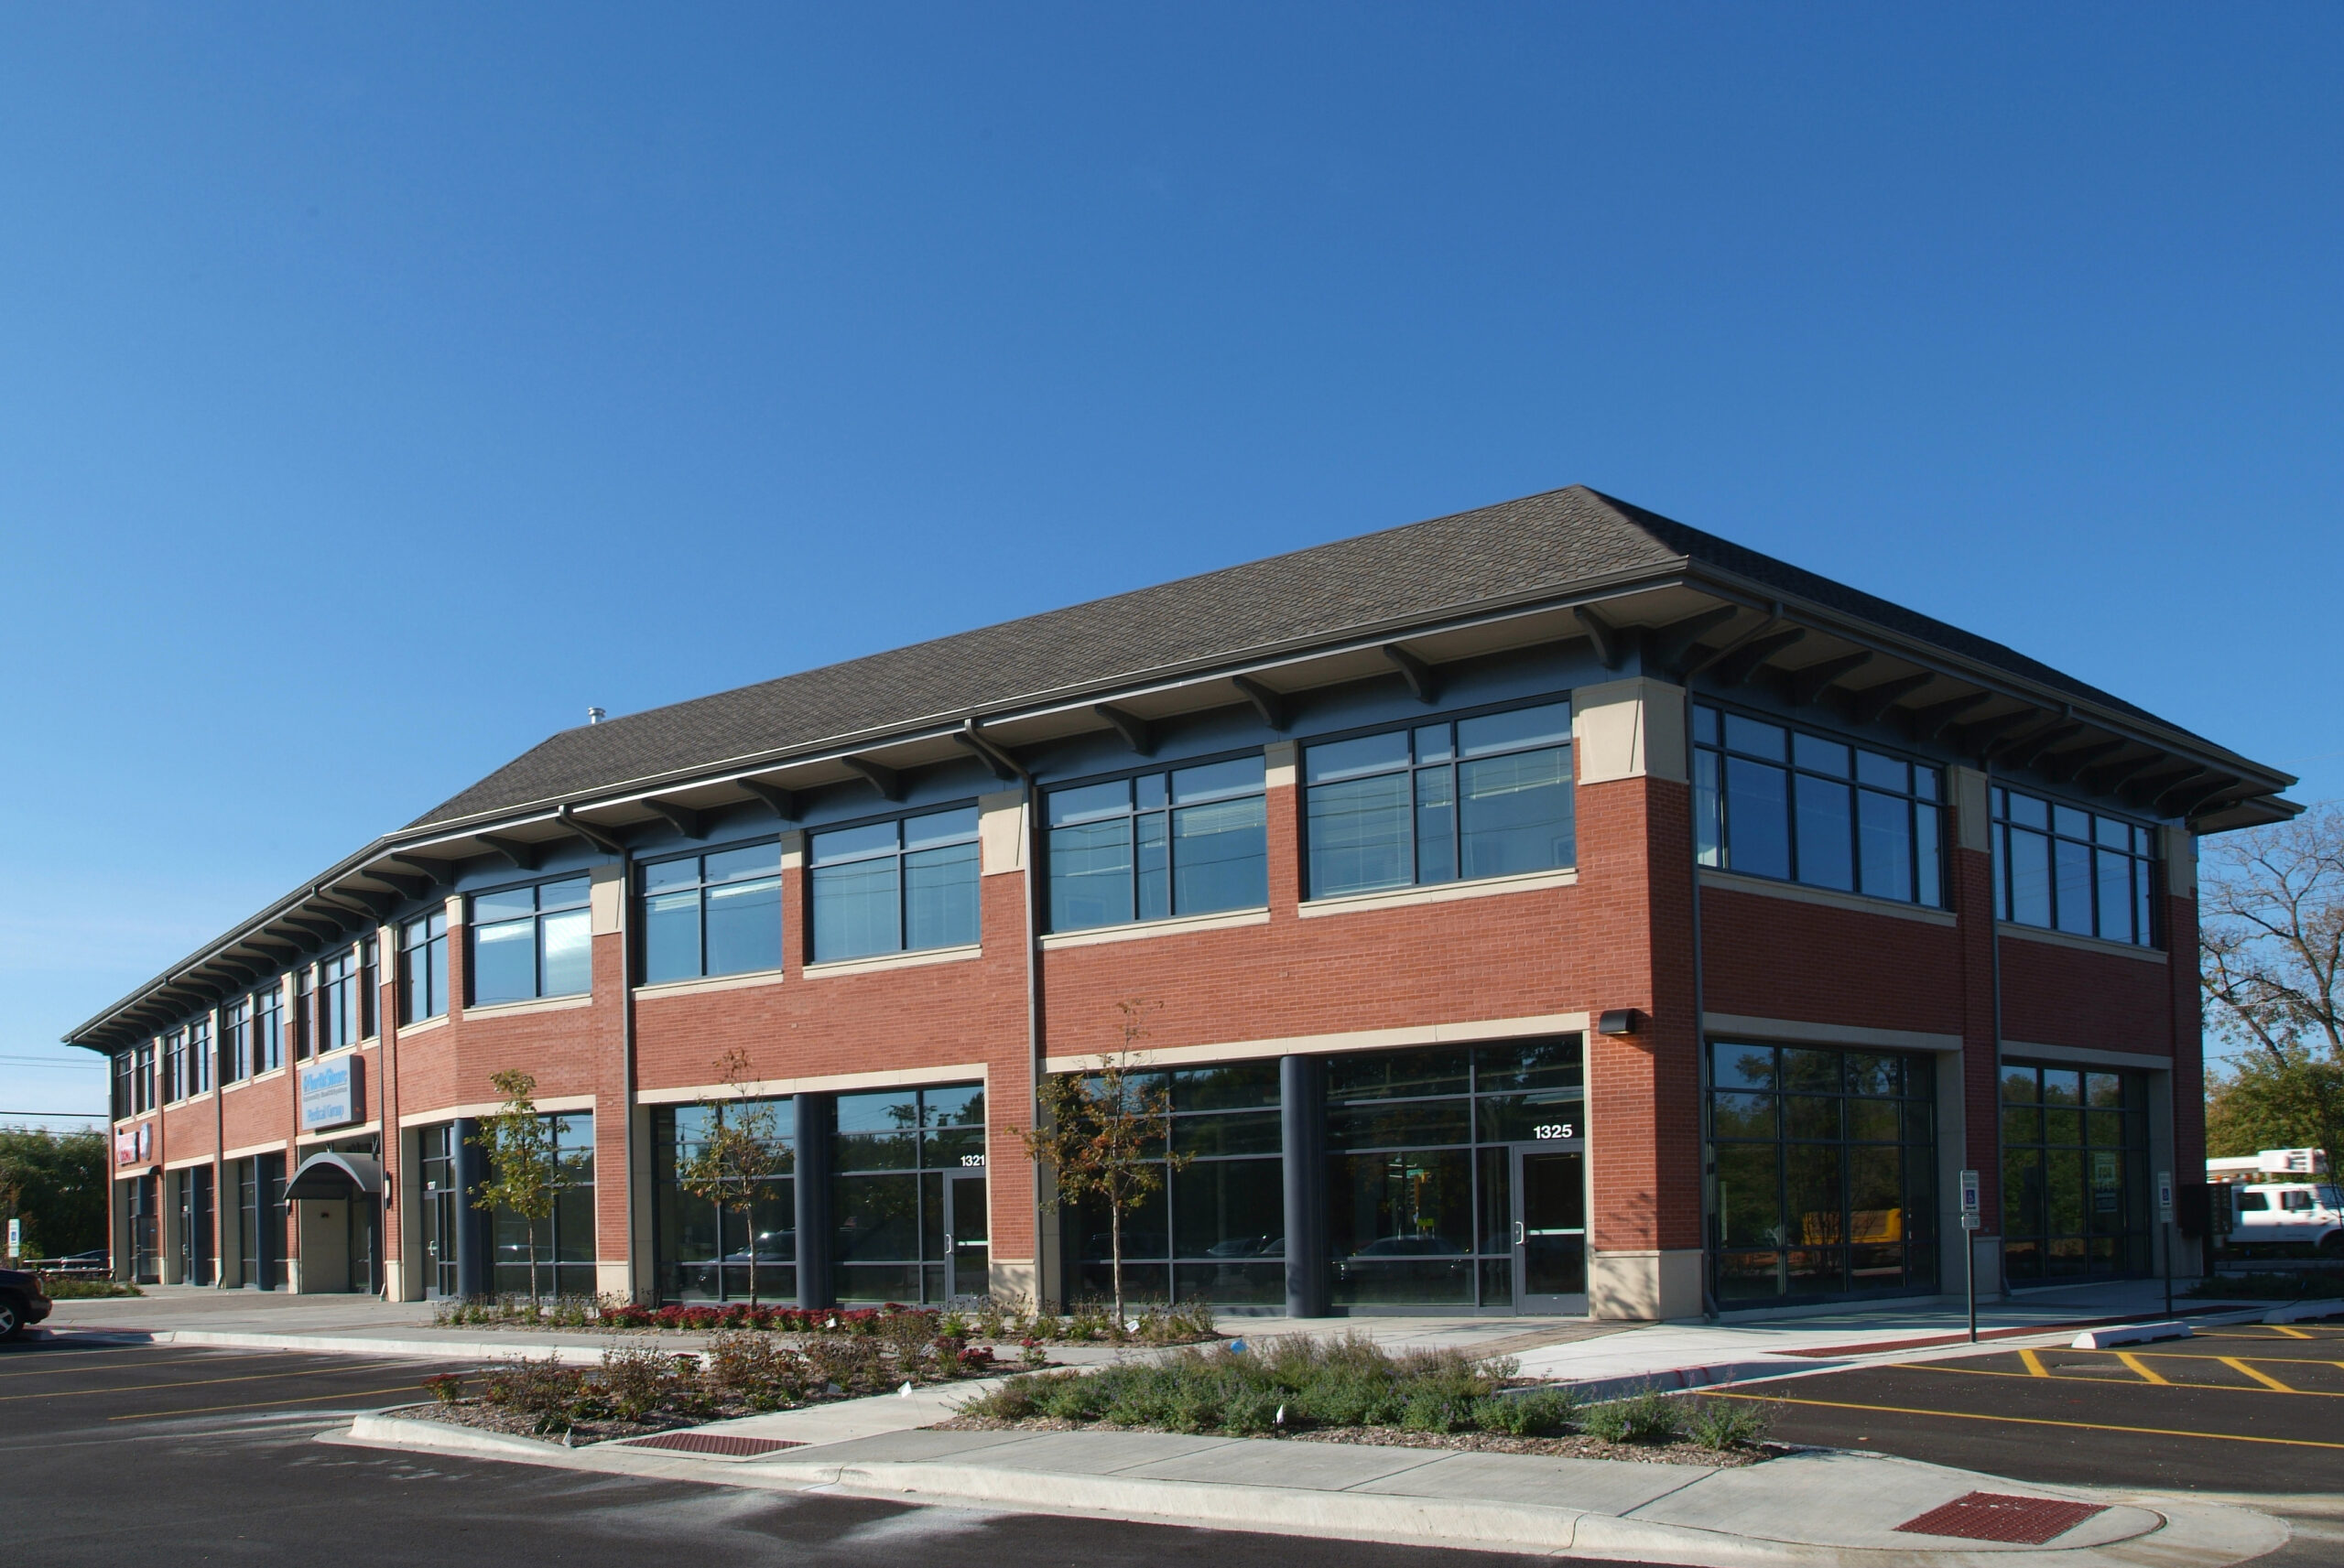 Exterior view of NorthShore Medical Group.